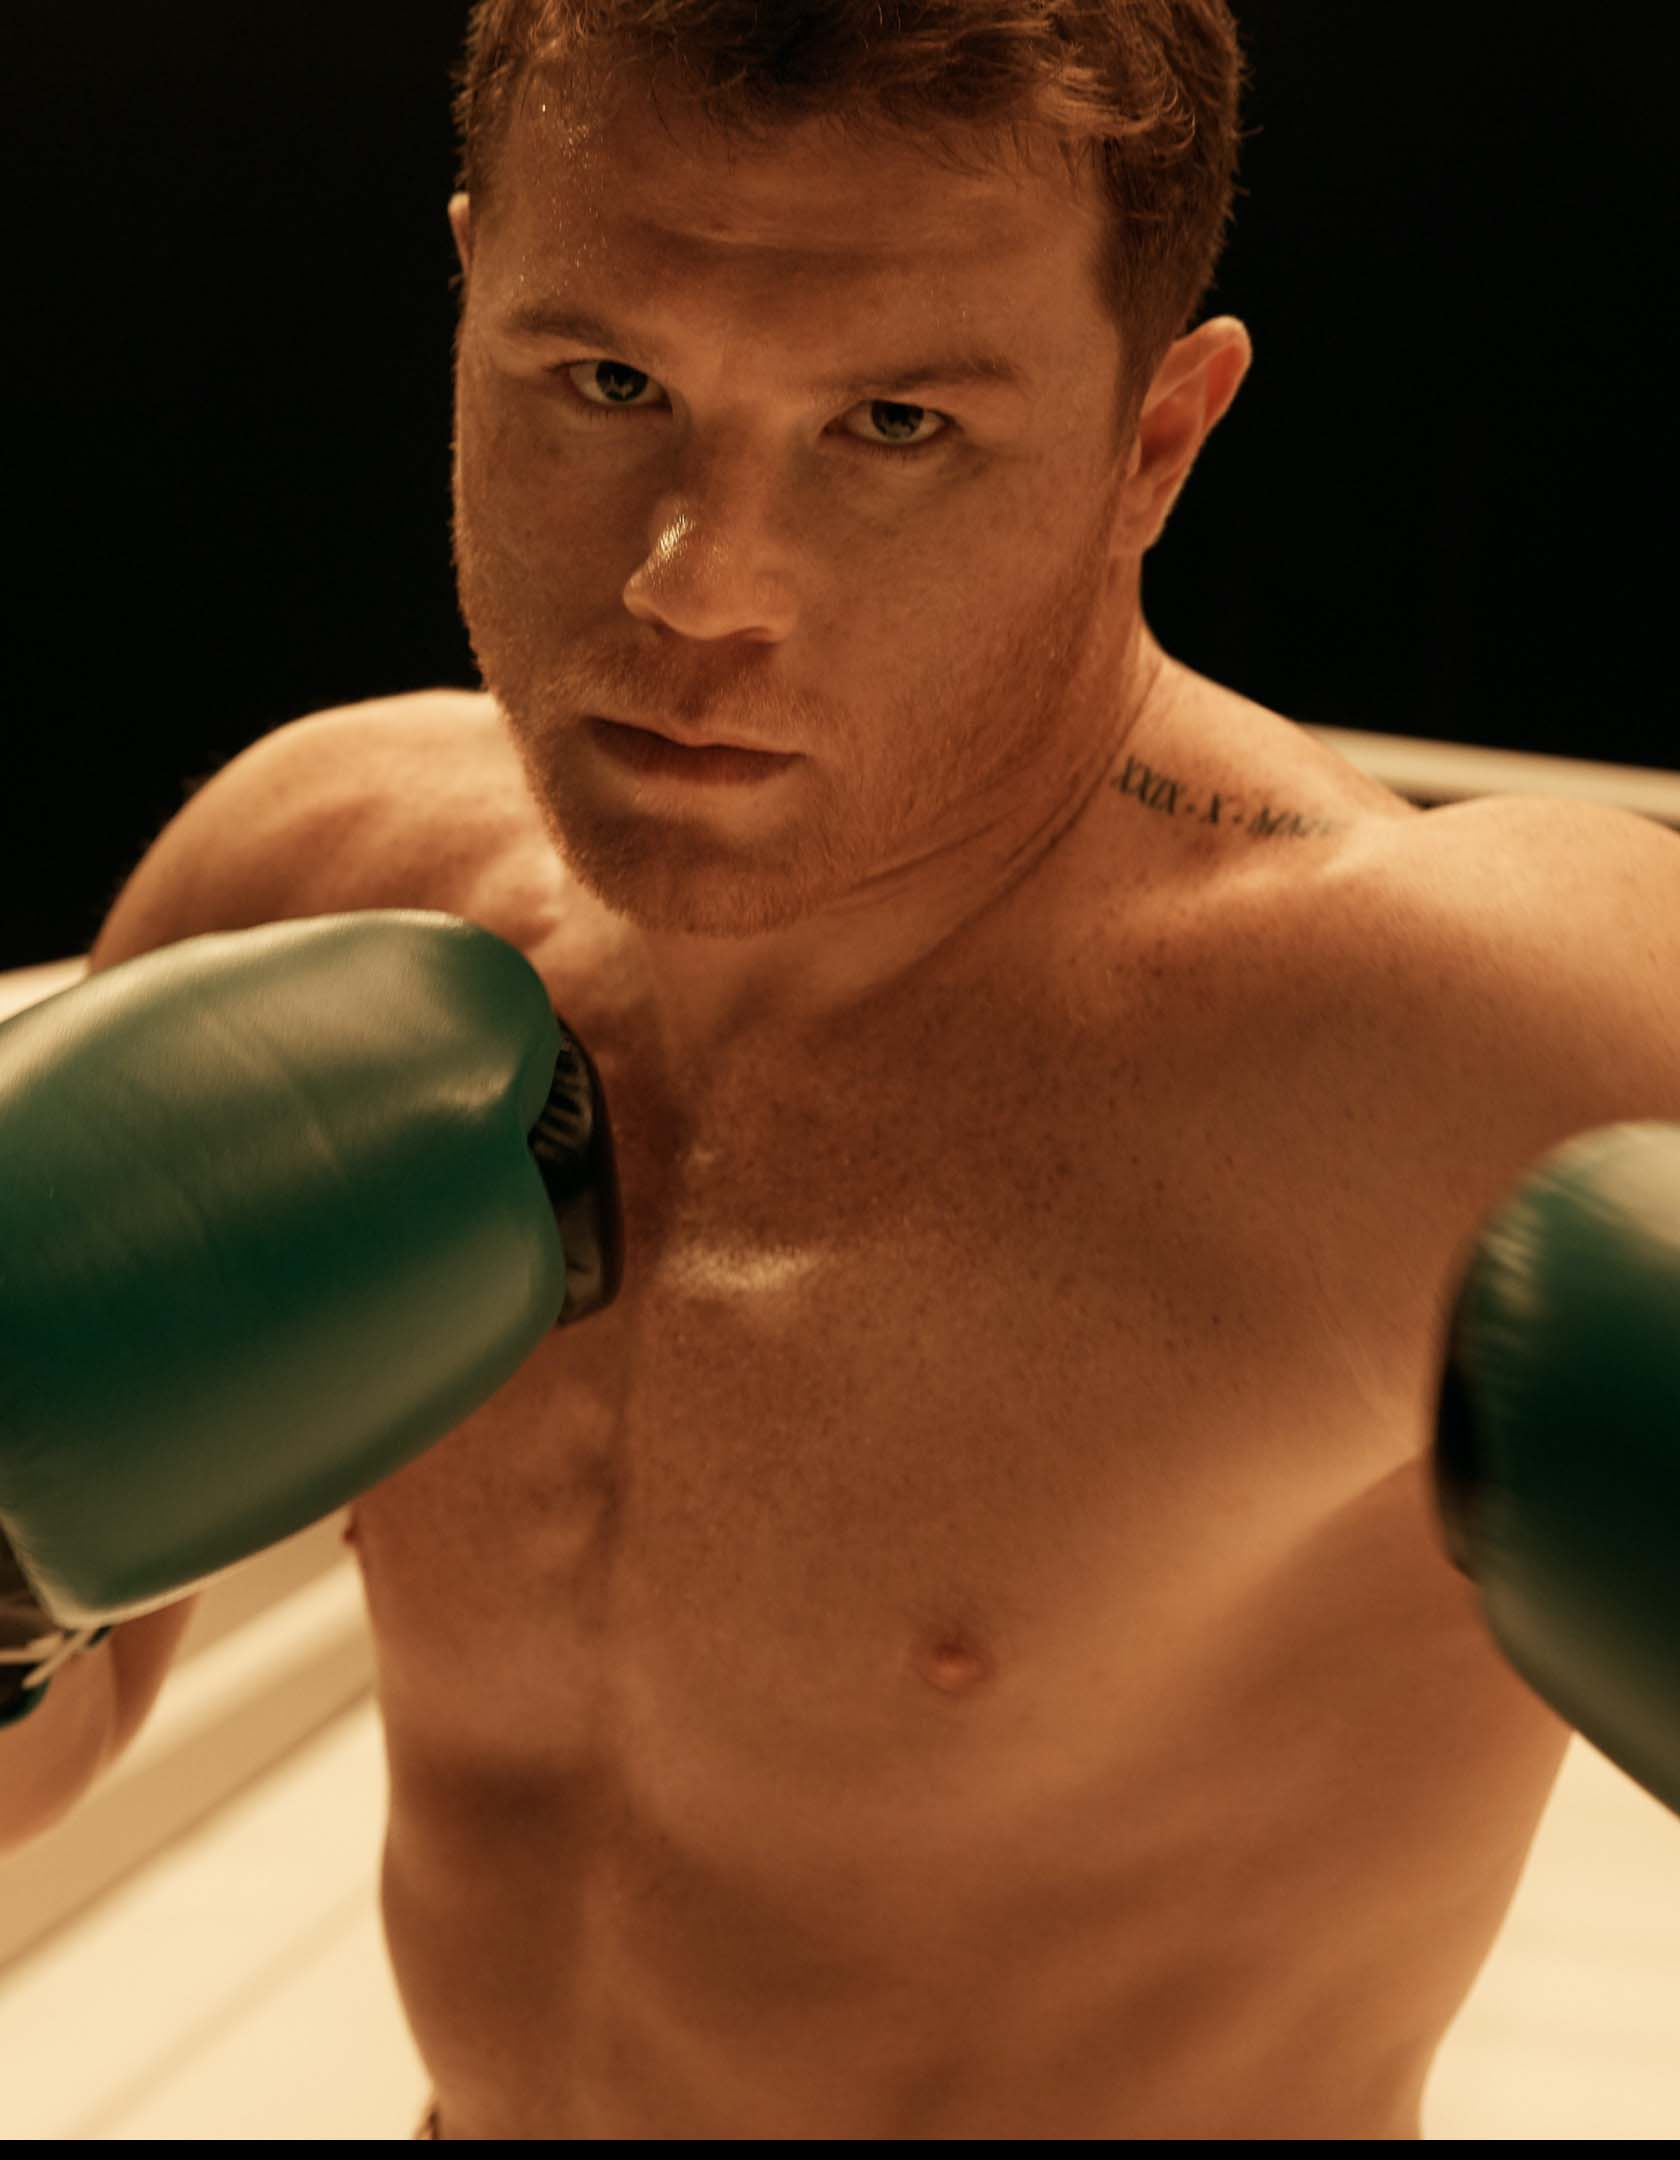 World champion boxer Canelo Alvarez standing in the boxing ring, confident and intimidating.